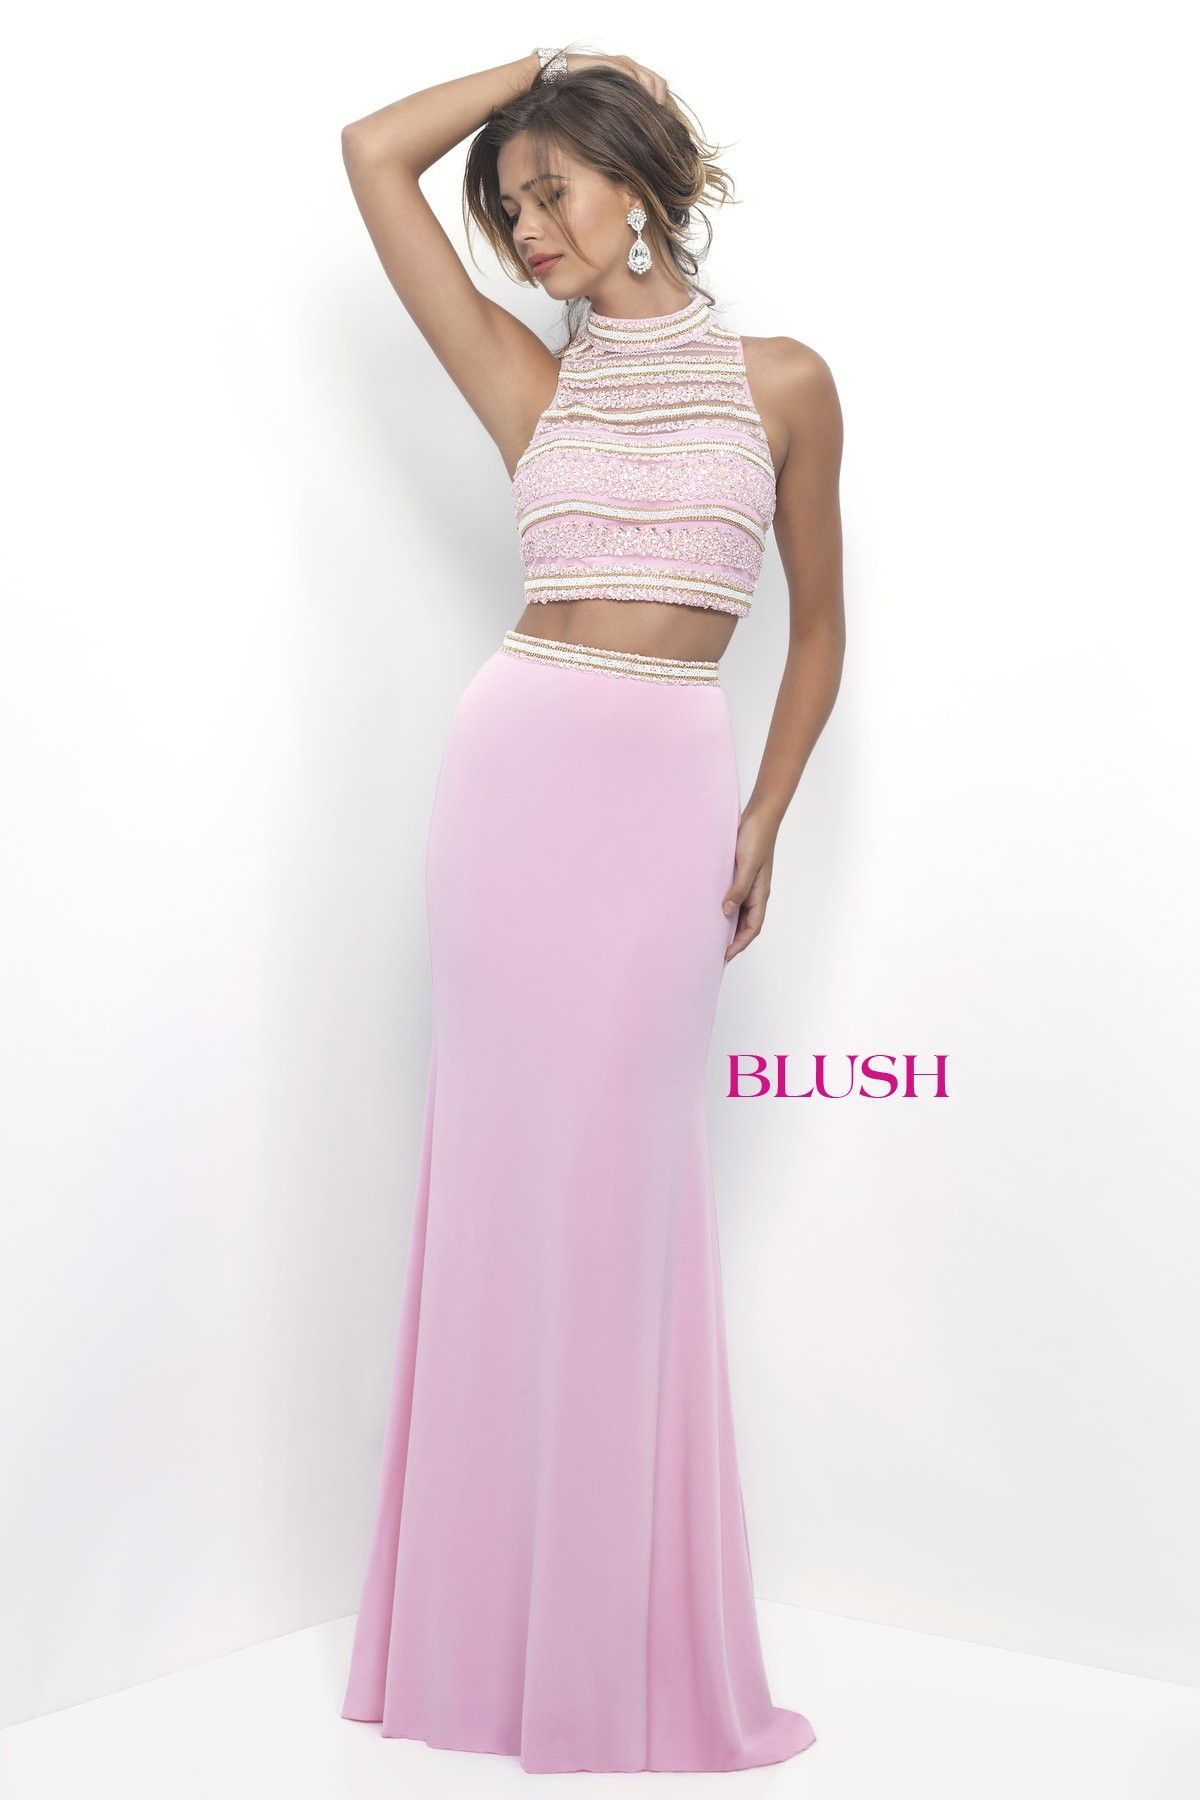 d3269c25aa8 Blush Prom 11230 Cotton Candy Pink High Neckline Prom Dress ...